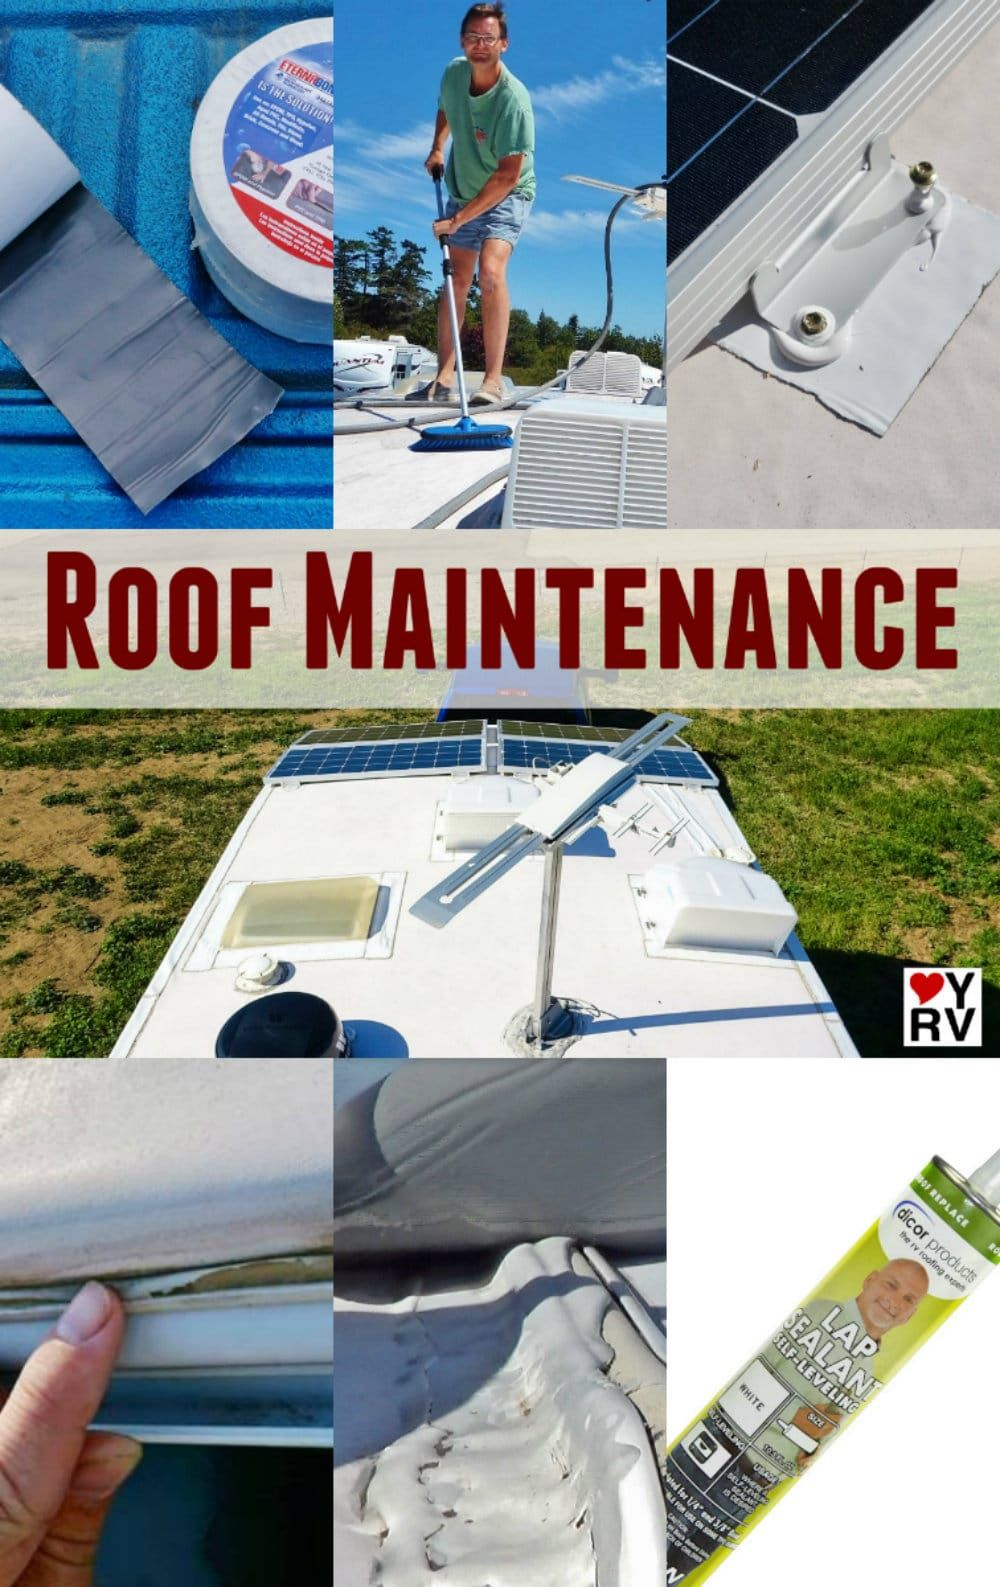 Bor Roofing Routine Rv Roof Maintenance Inspection And Leak Protection